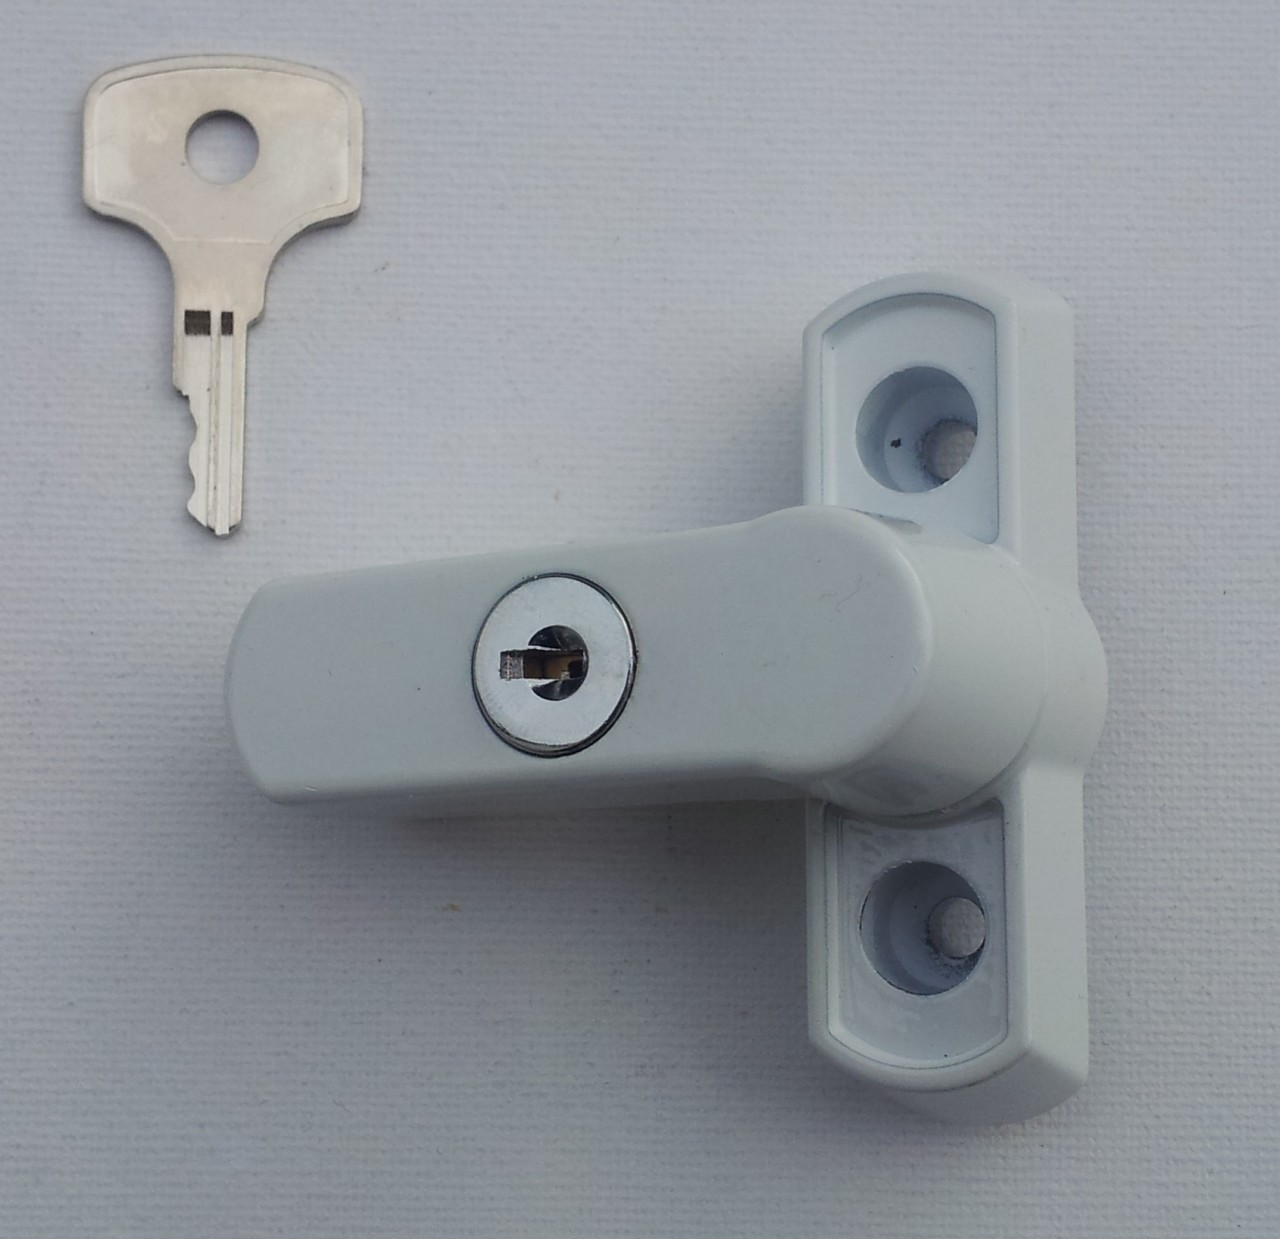 Lockey Key Box Safe further Upvc Lock as well Electric Door Bolts further Chest Lock moreover De Ul. on electric door lock systems